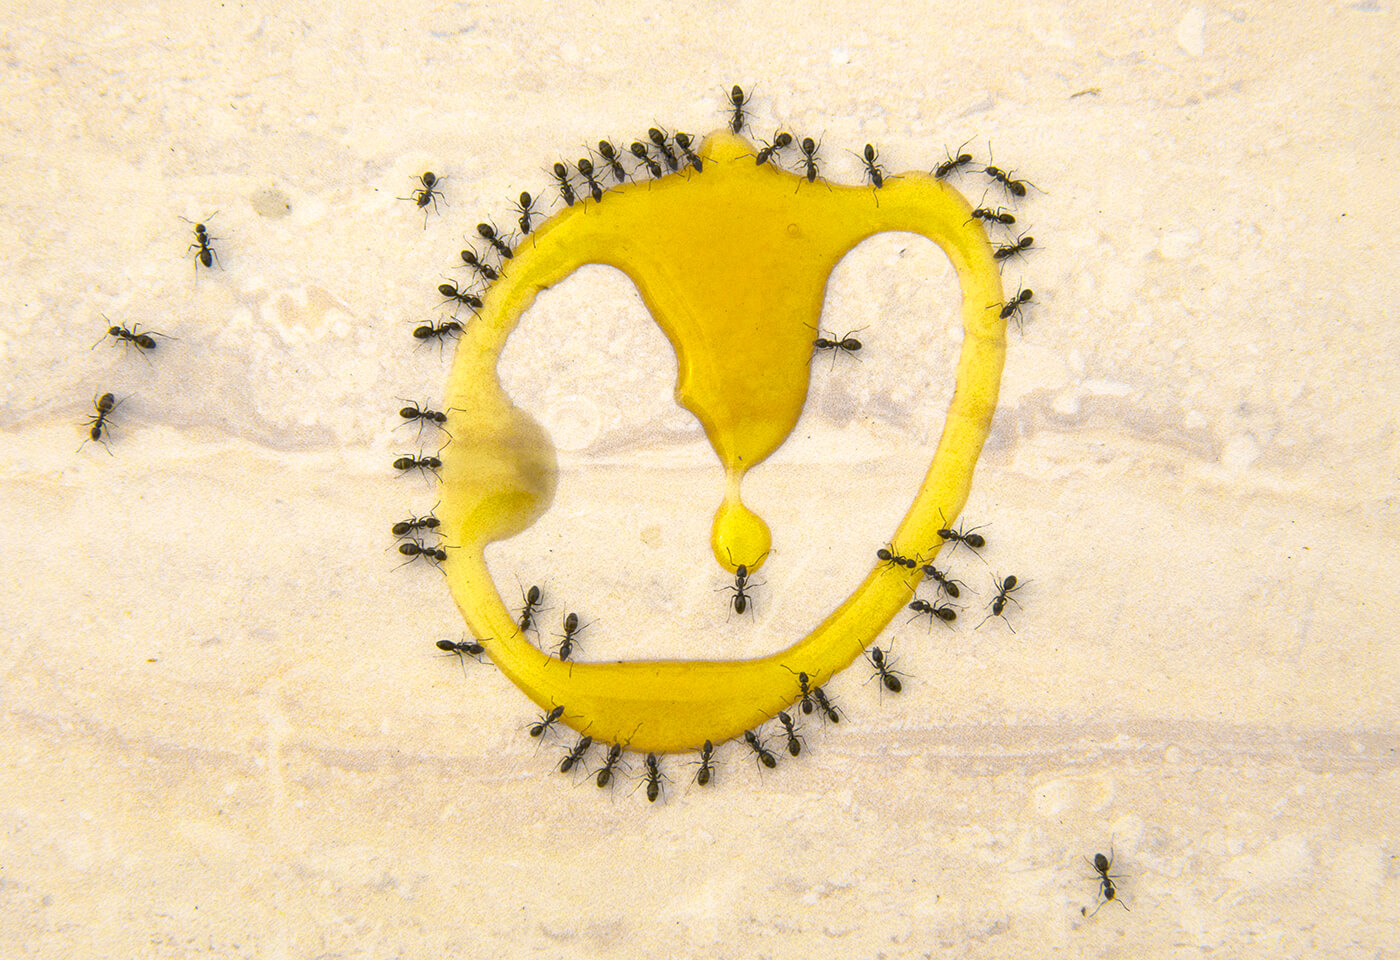 Ants around honey image by Irene Manion